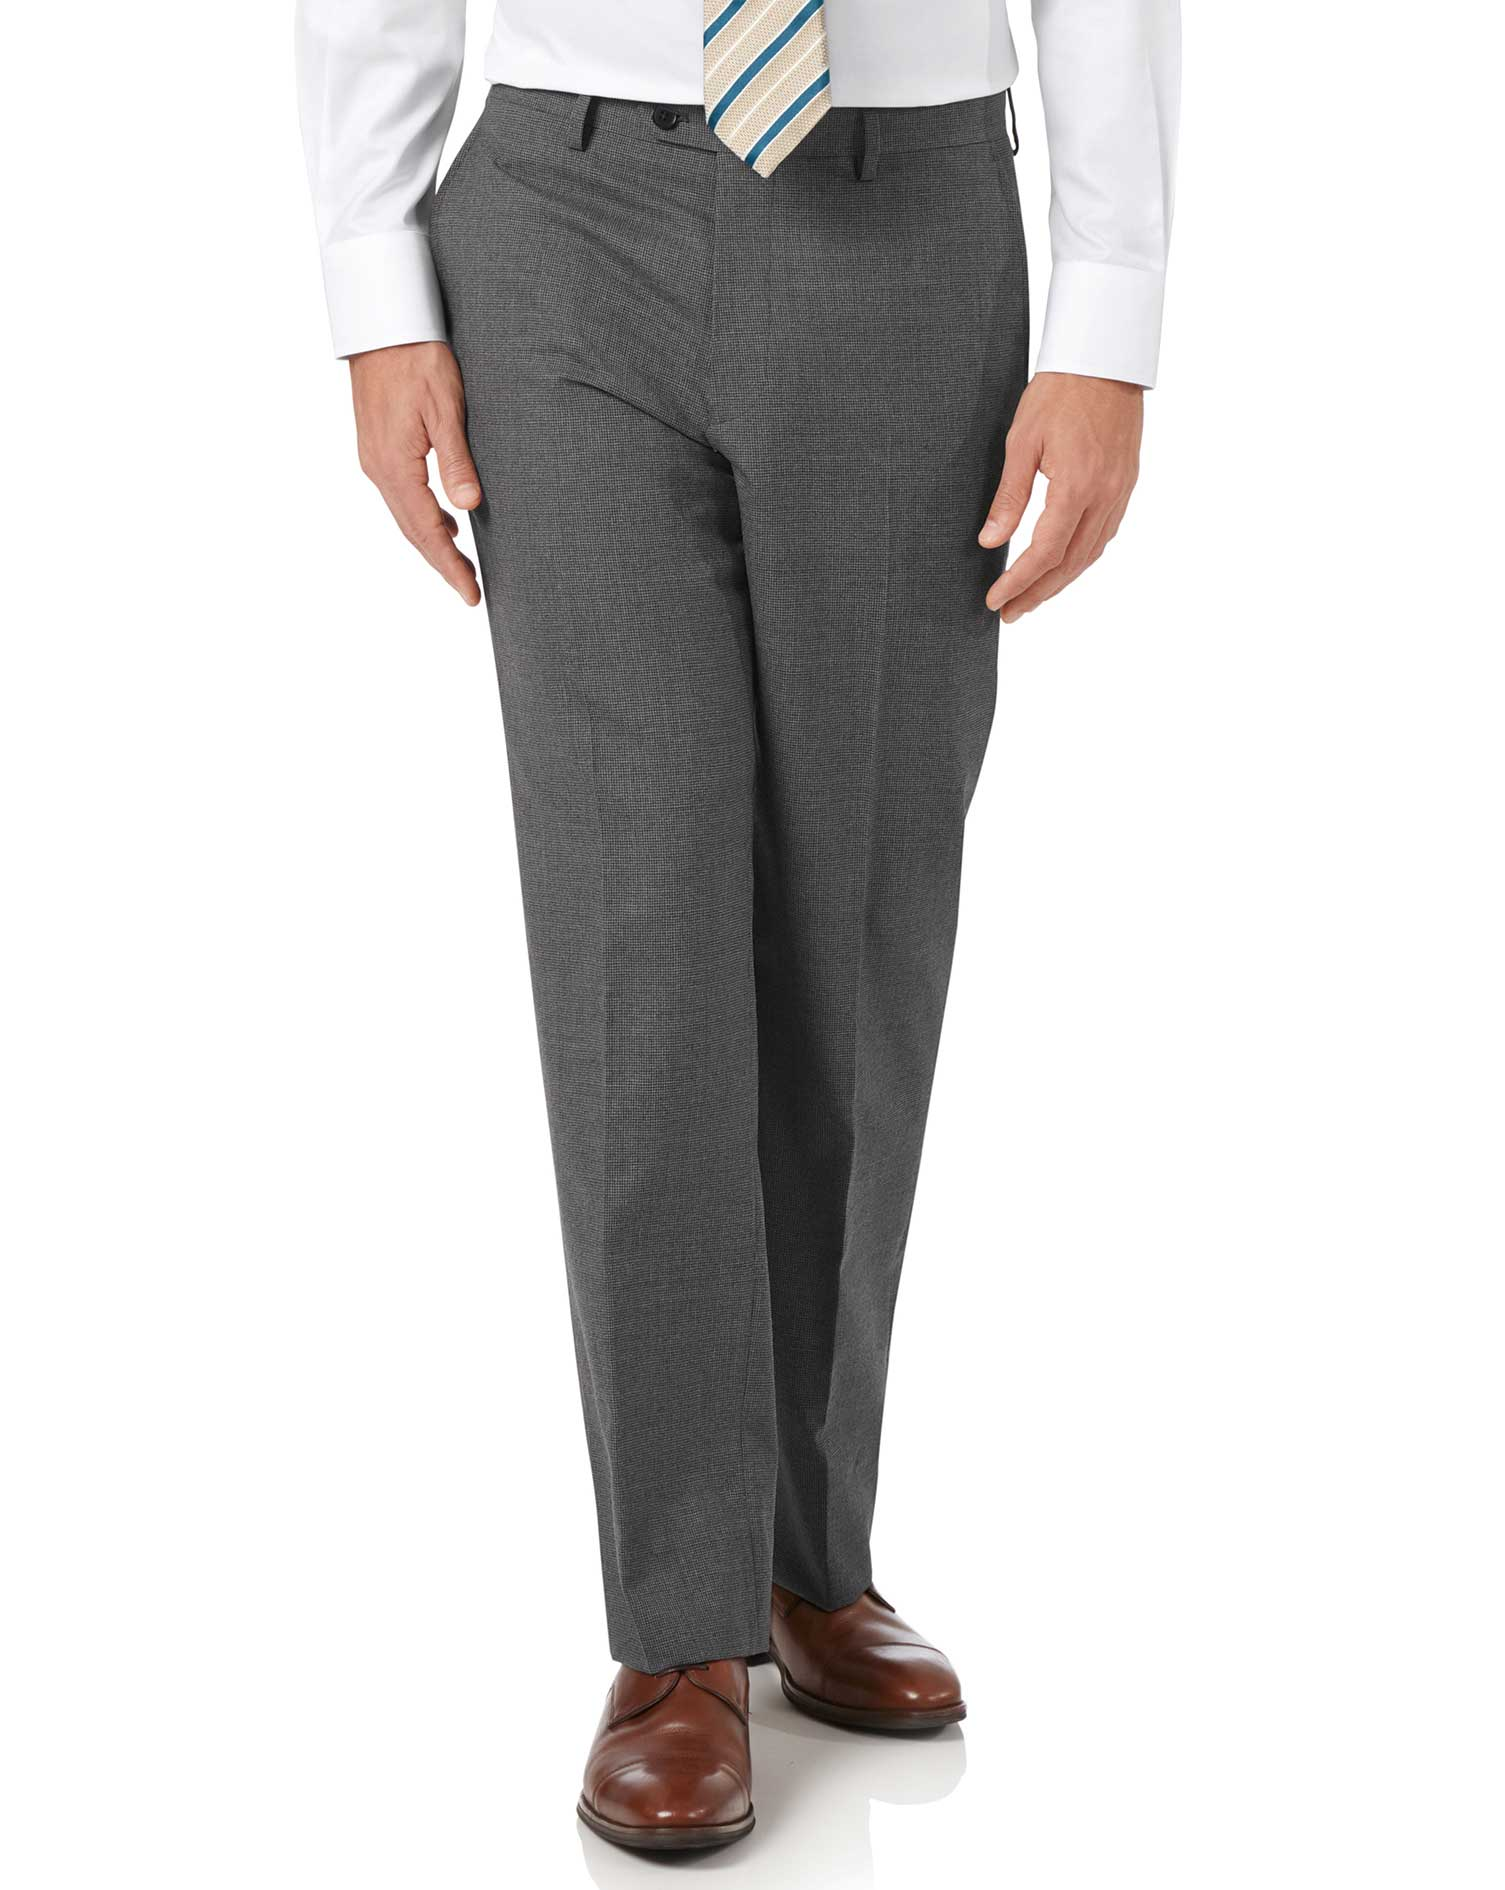 Charcoal classic fit Panama puppytooth business suit pants